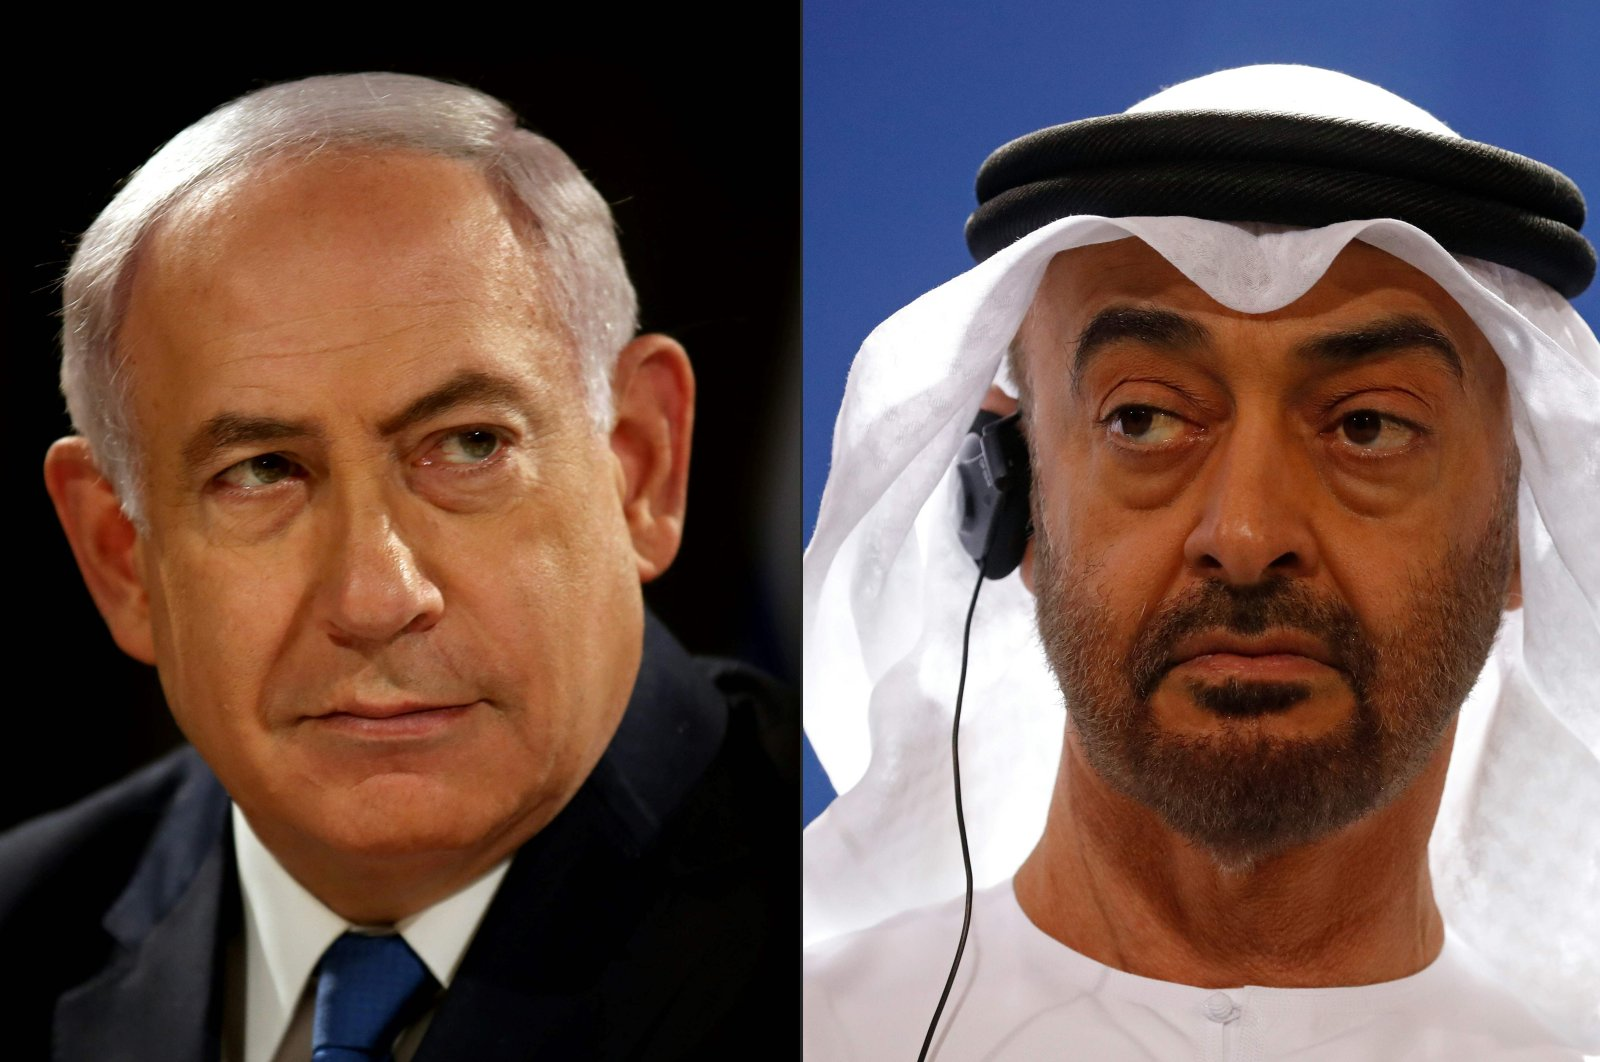 This combination of pictures shows Israeli Prime Minister Benjamin Netanyahu (L) in Jerusalem and Abu Dhabi's Crown Prince Mohammed bin Zayed in Berlin, created Aug. 13, 2020. (AFP Photos)